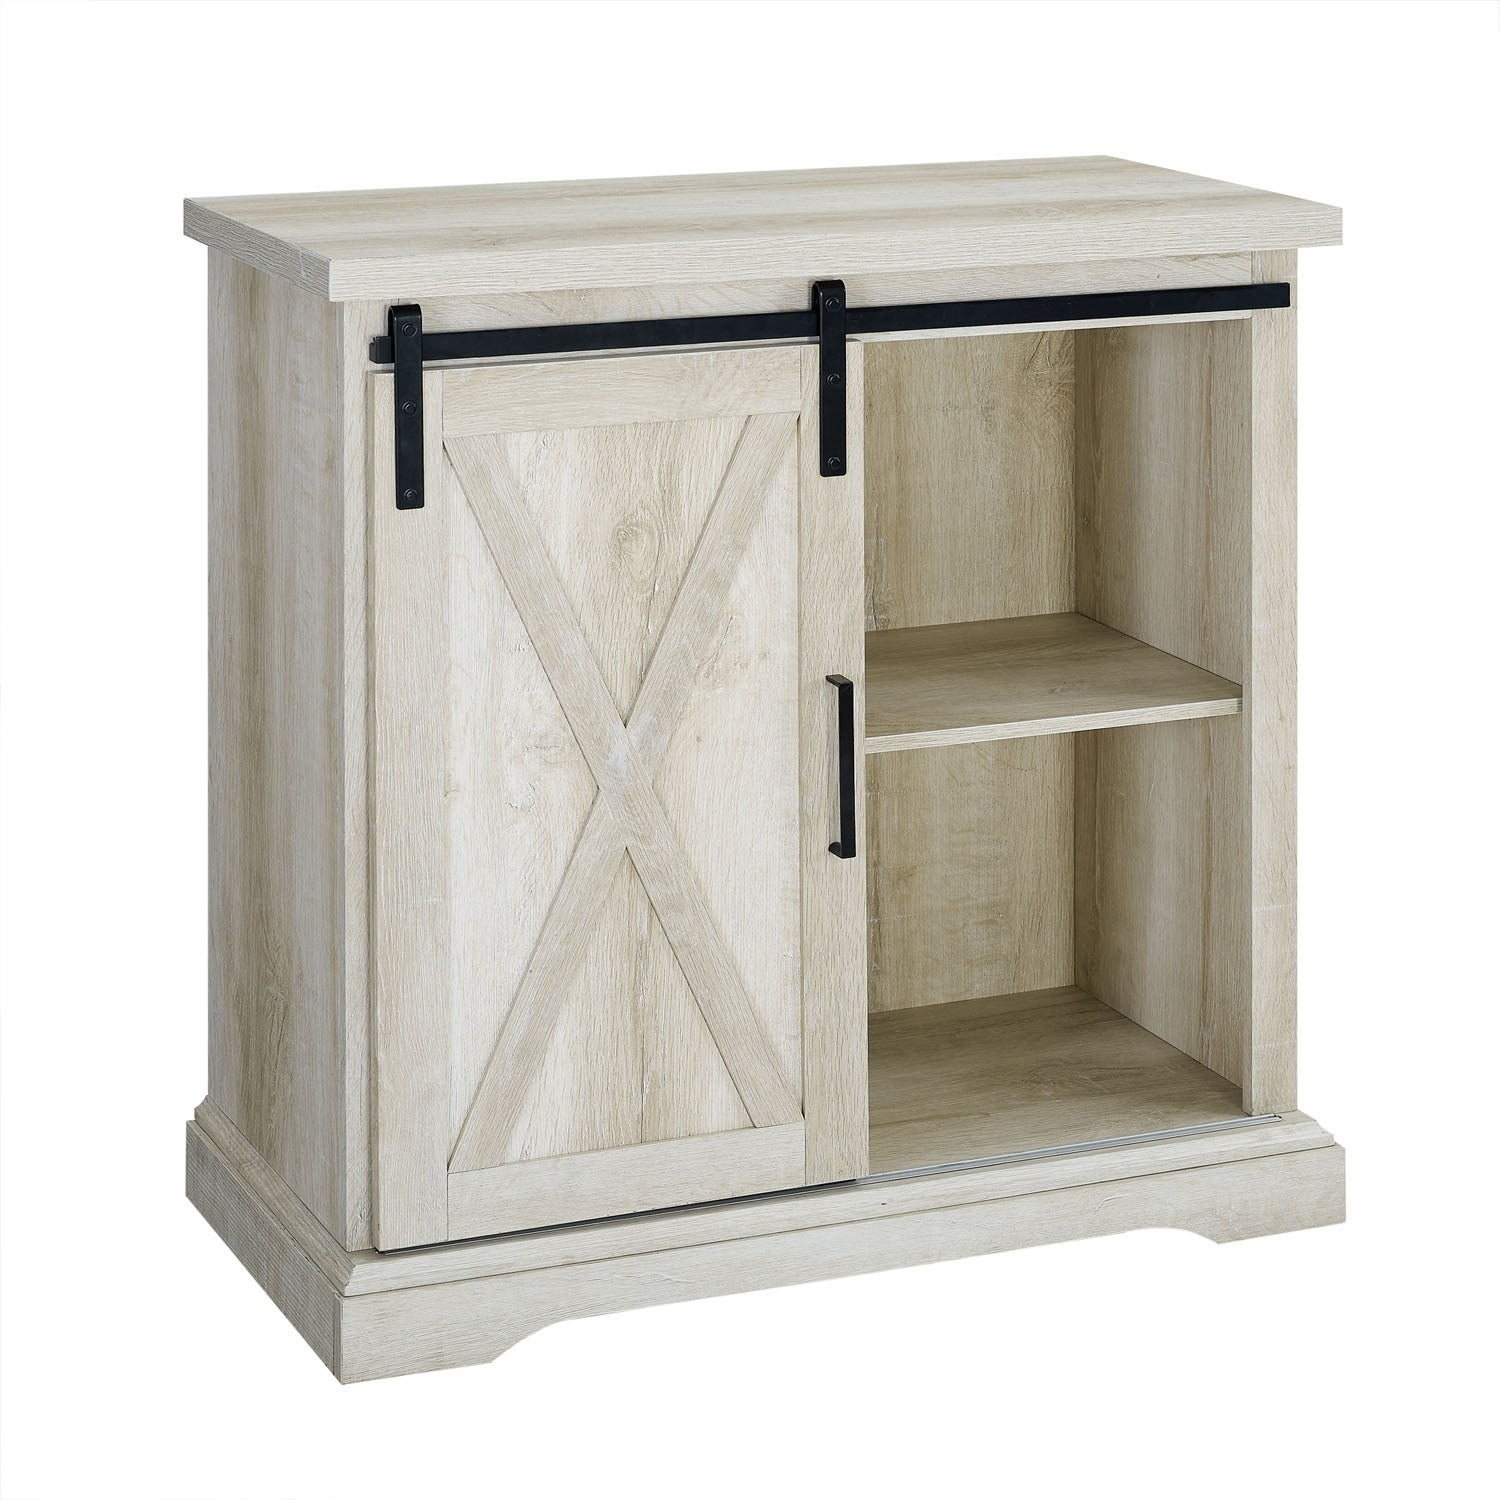 "32"" Rustic Farmhouse Wood Buffet With Storage Cabinet - White Oak - N/a throughout Saucedo Rustic White Buffets (Image 2 of 30)"